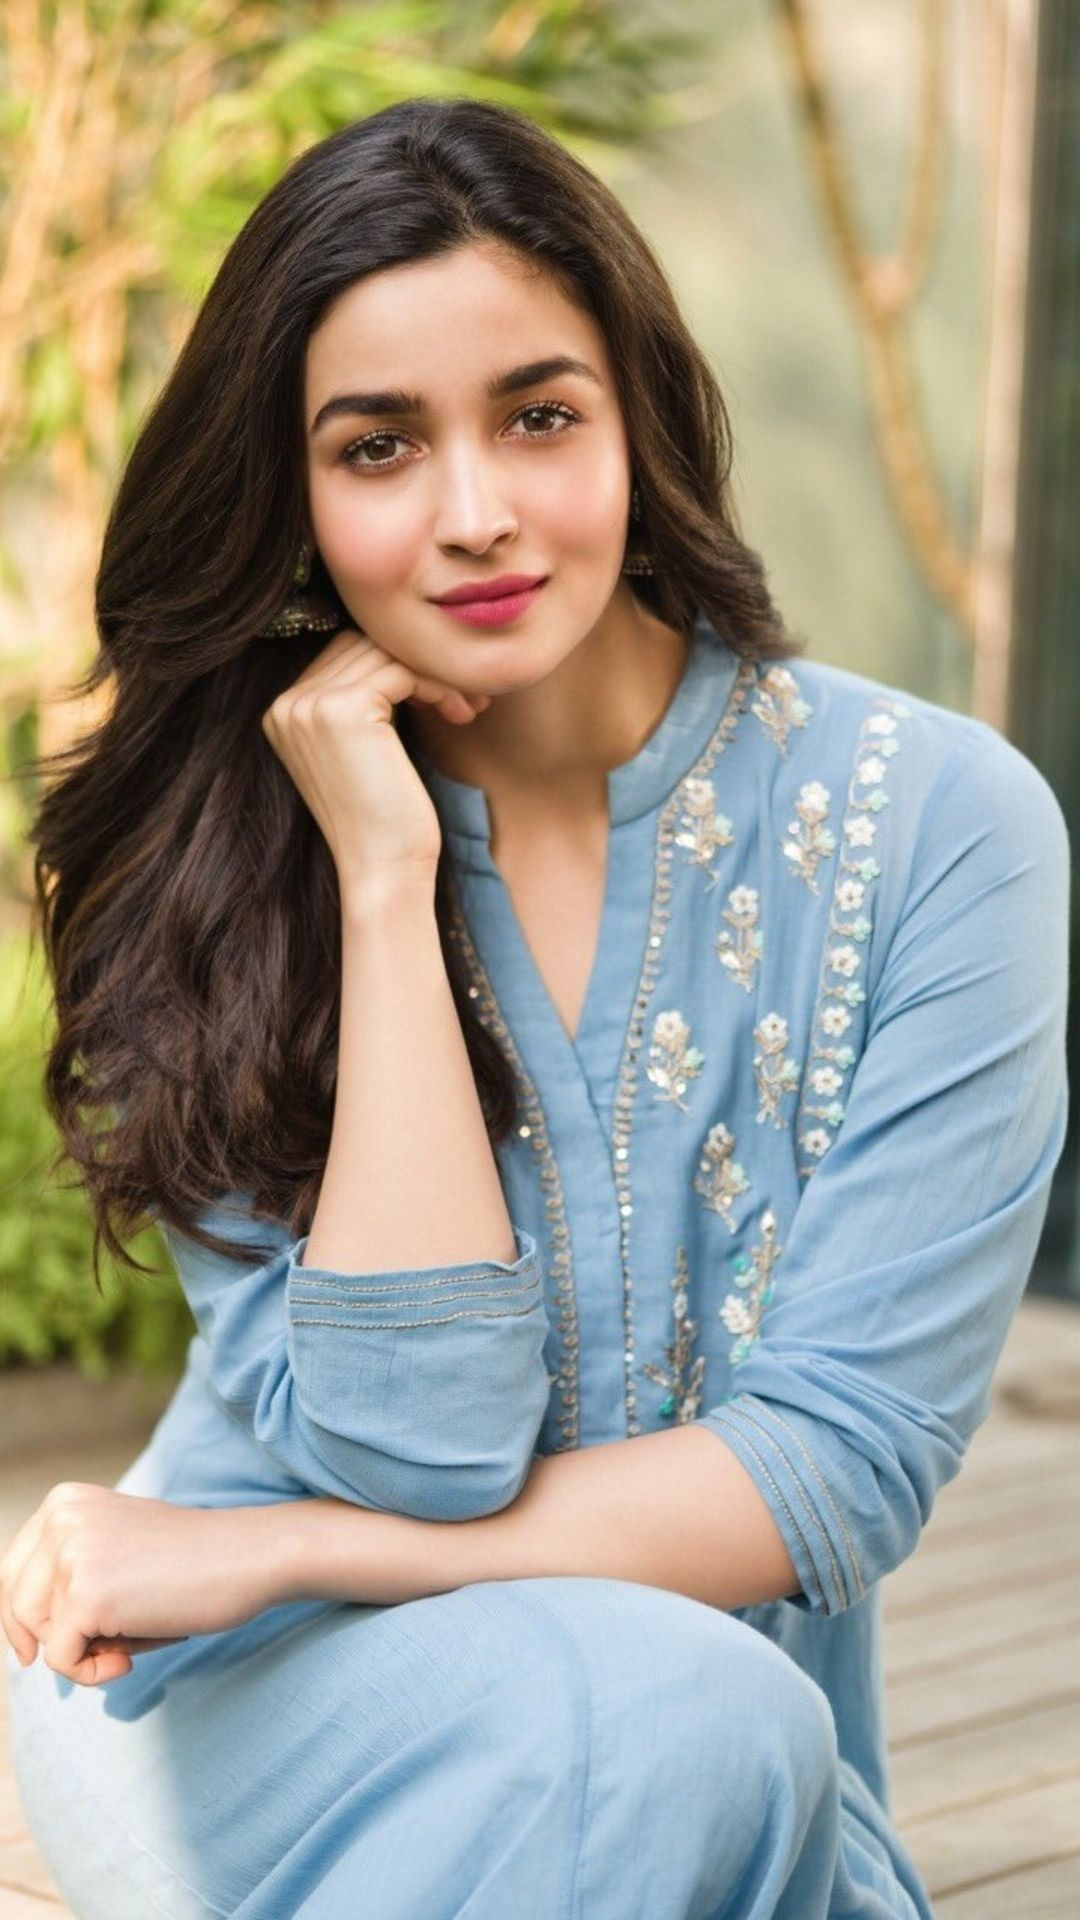 7570 Celebrities Images Hd Photos 1080p Wallpapers Android Iphone 2020 1080p Android Alia Bhatt Photoshoot Indian Celebrities Alia Bhatt Cute Alia bhatt photos hd wallpaper